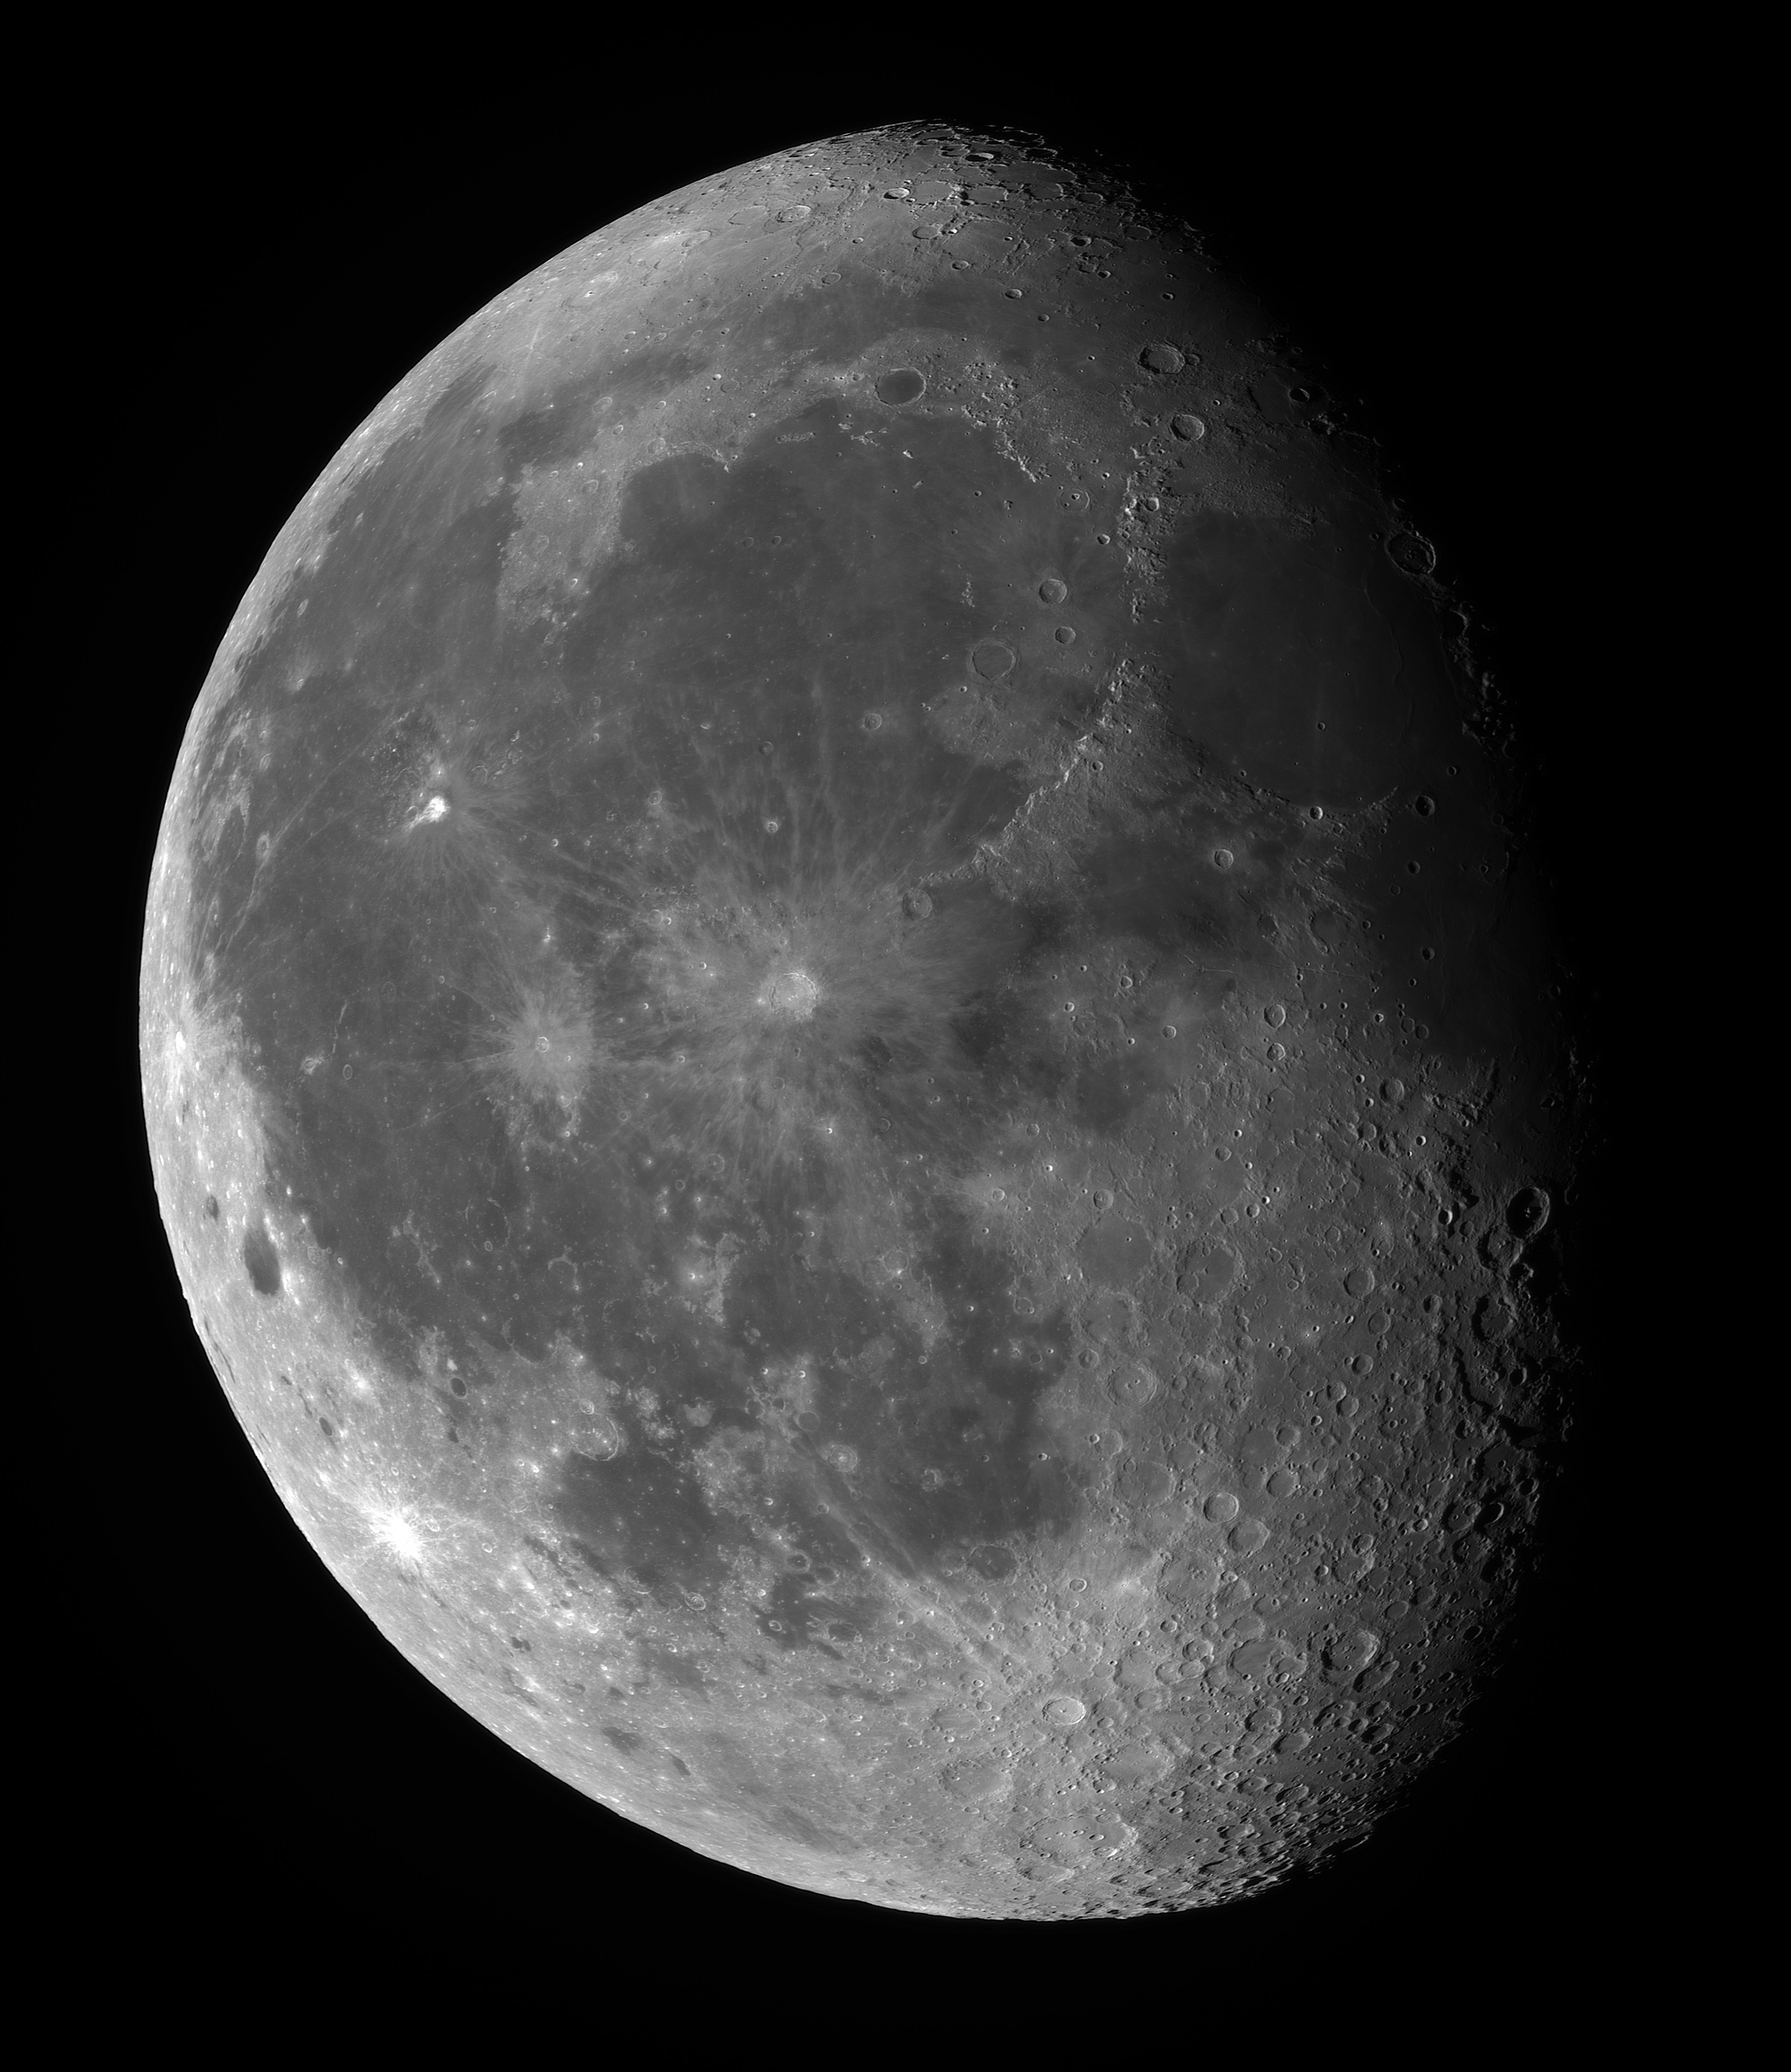 2018-09-29-1536_5-L-Moon_AS_f1000_g4_ap279_ps.jpg